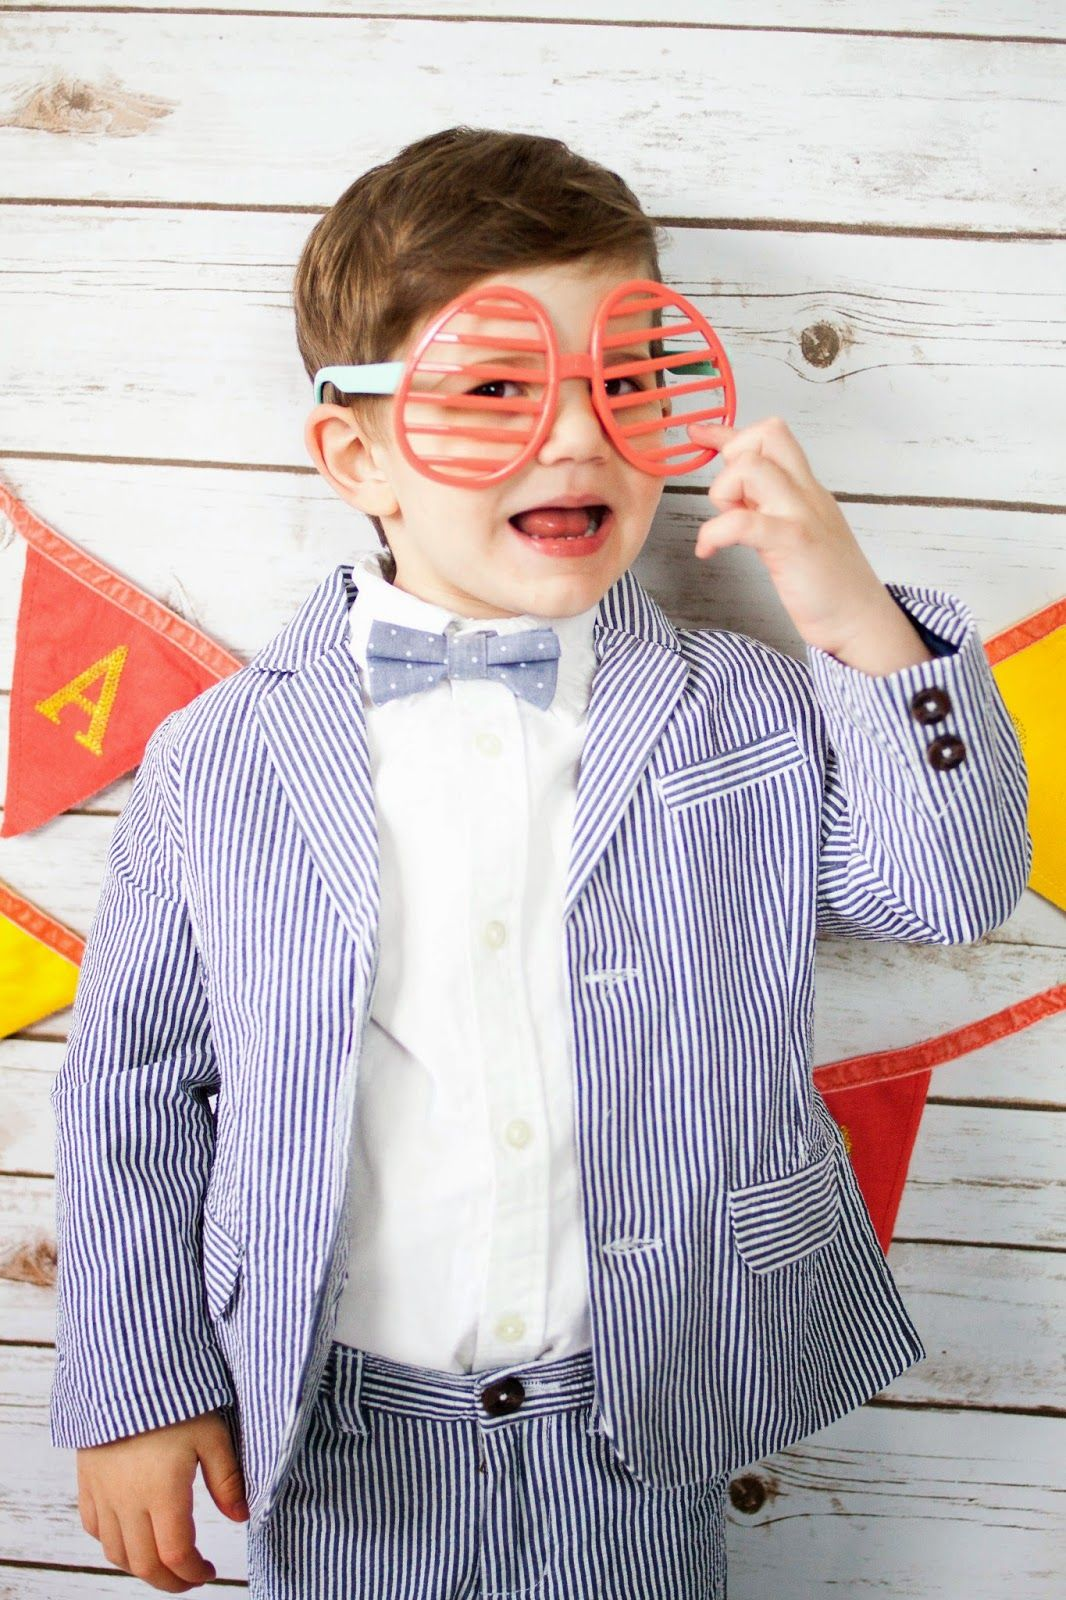 3cfd9c348 Dressing Toddler Boys for Easter with help from @target #TargetBaby  #TargetCrowd AD